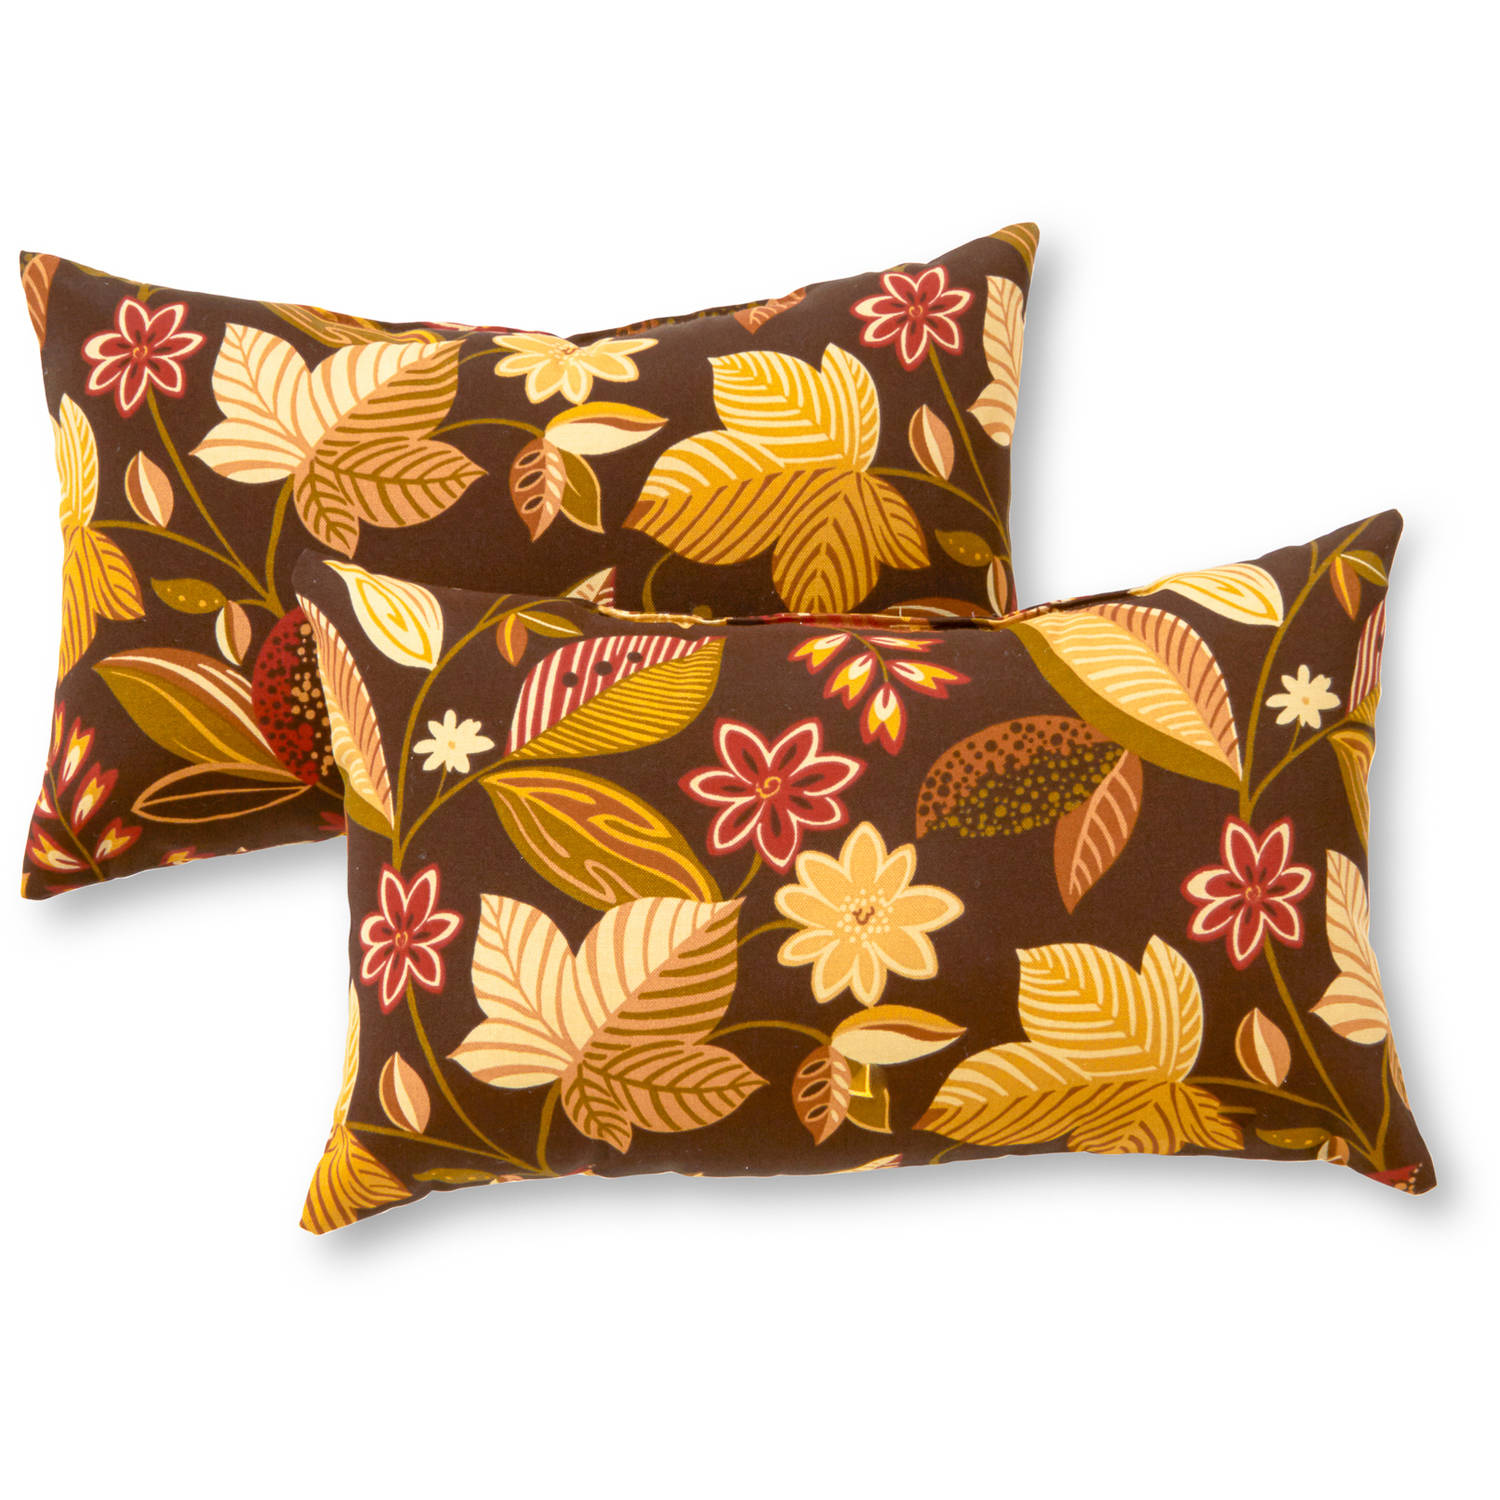 Greendale Home Fashions Rectangle Outdoor Accent Pillows, Set of 2, Kiwi